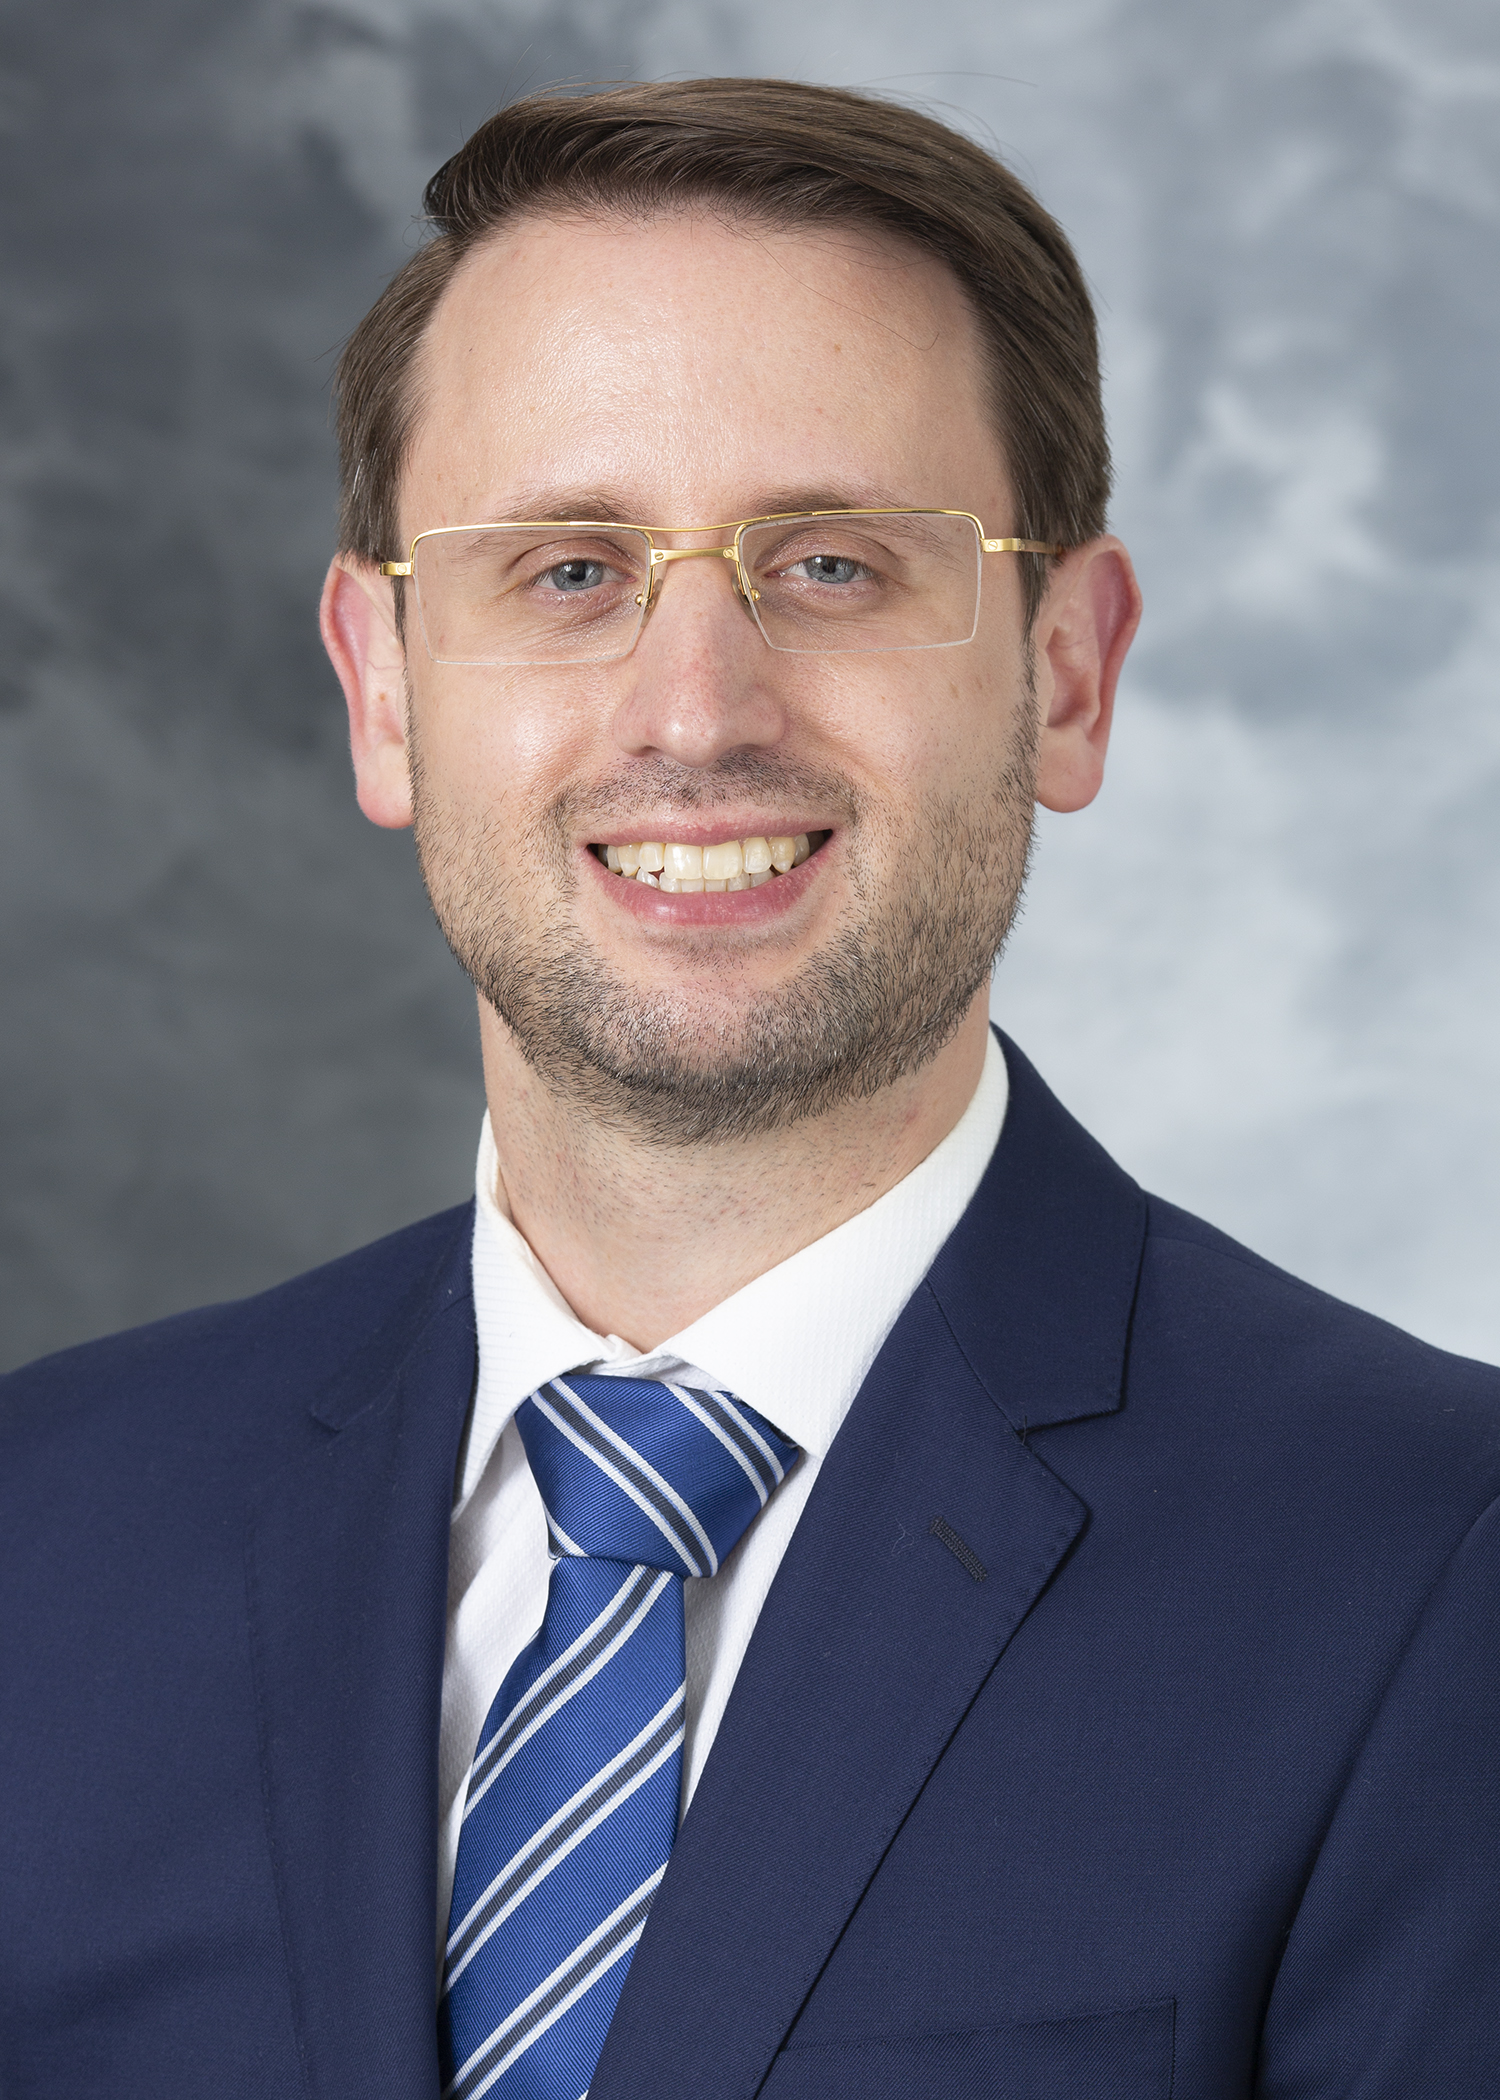 Picture of Andrew Wentland, MD, PhD